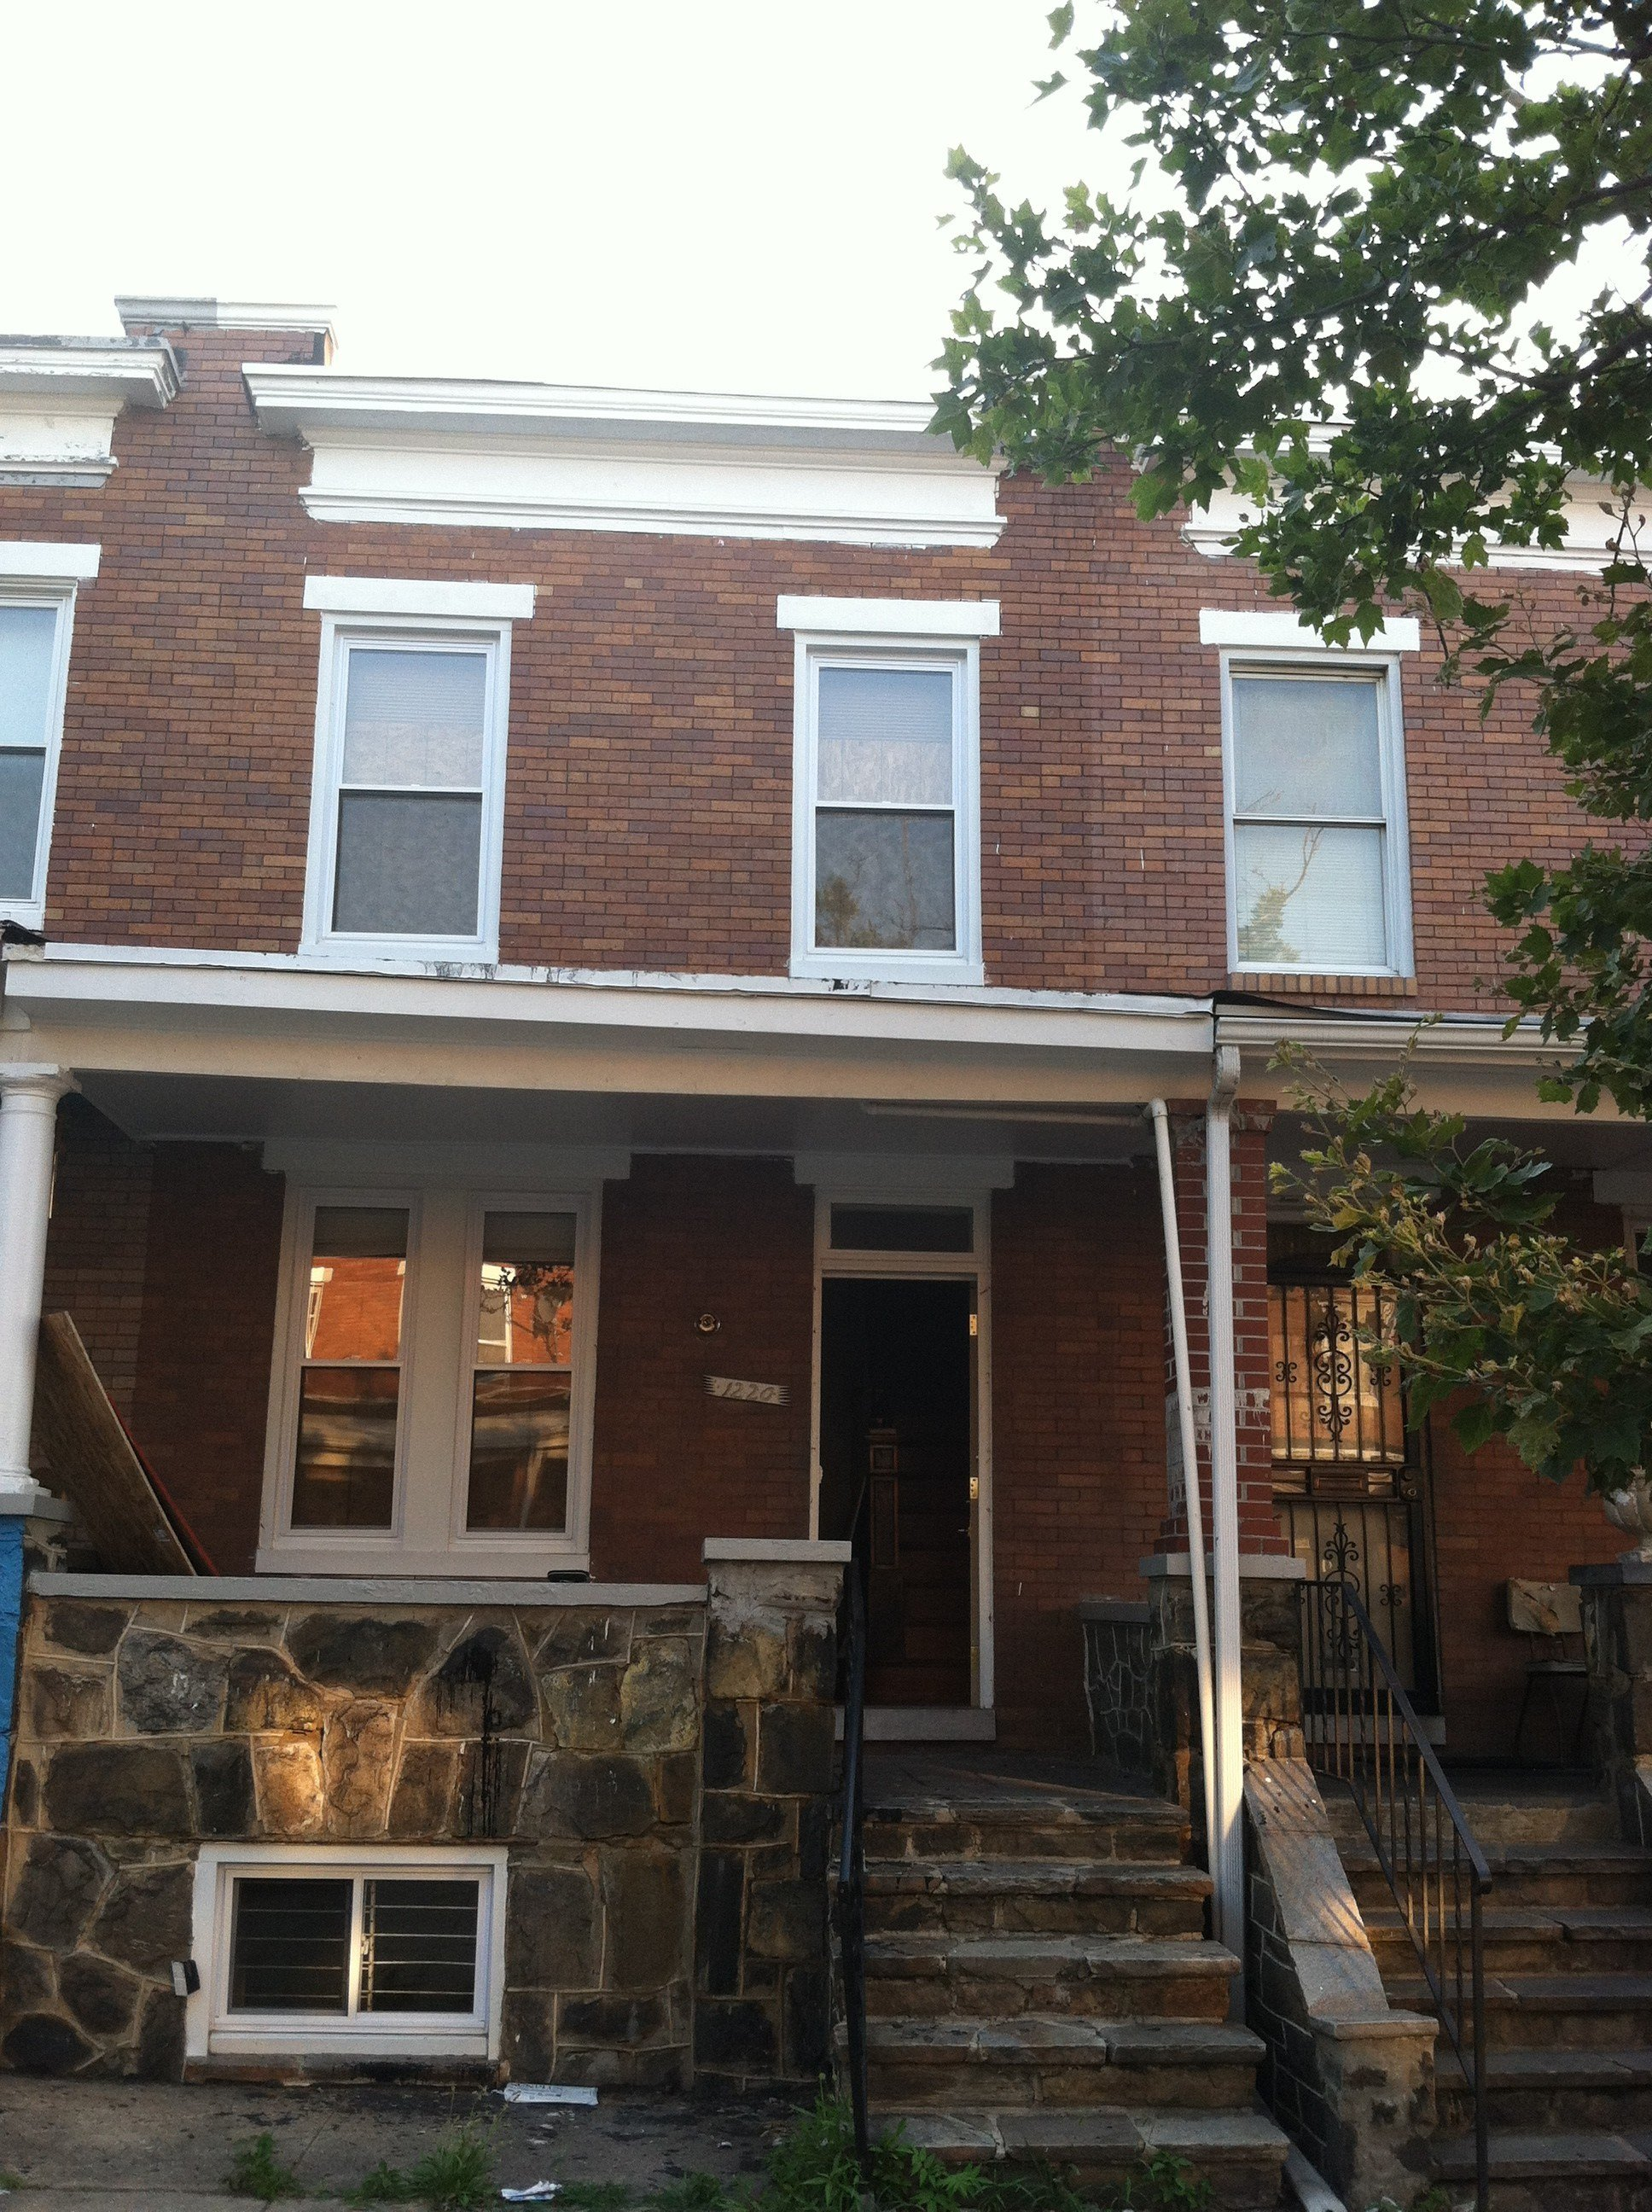 Best 1220 N Potomac St Baltimore Md 21213 3 Bedroom Apartment For Rent For 900 Month Zumper With Pictures